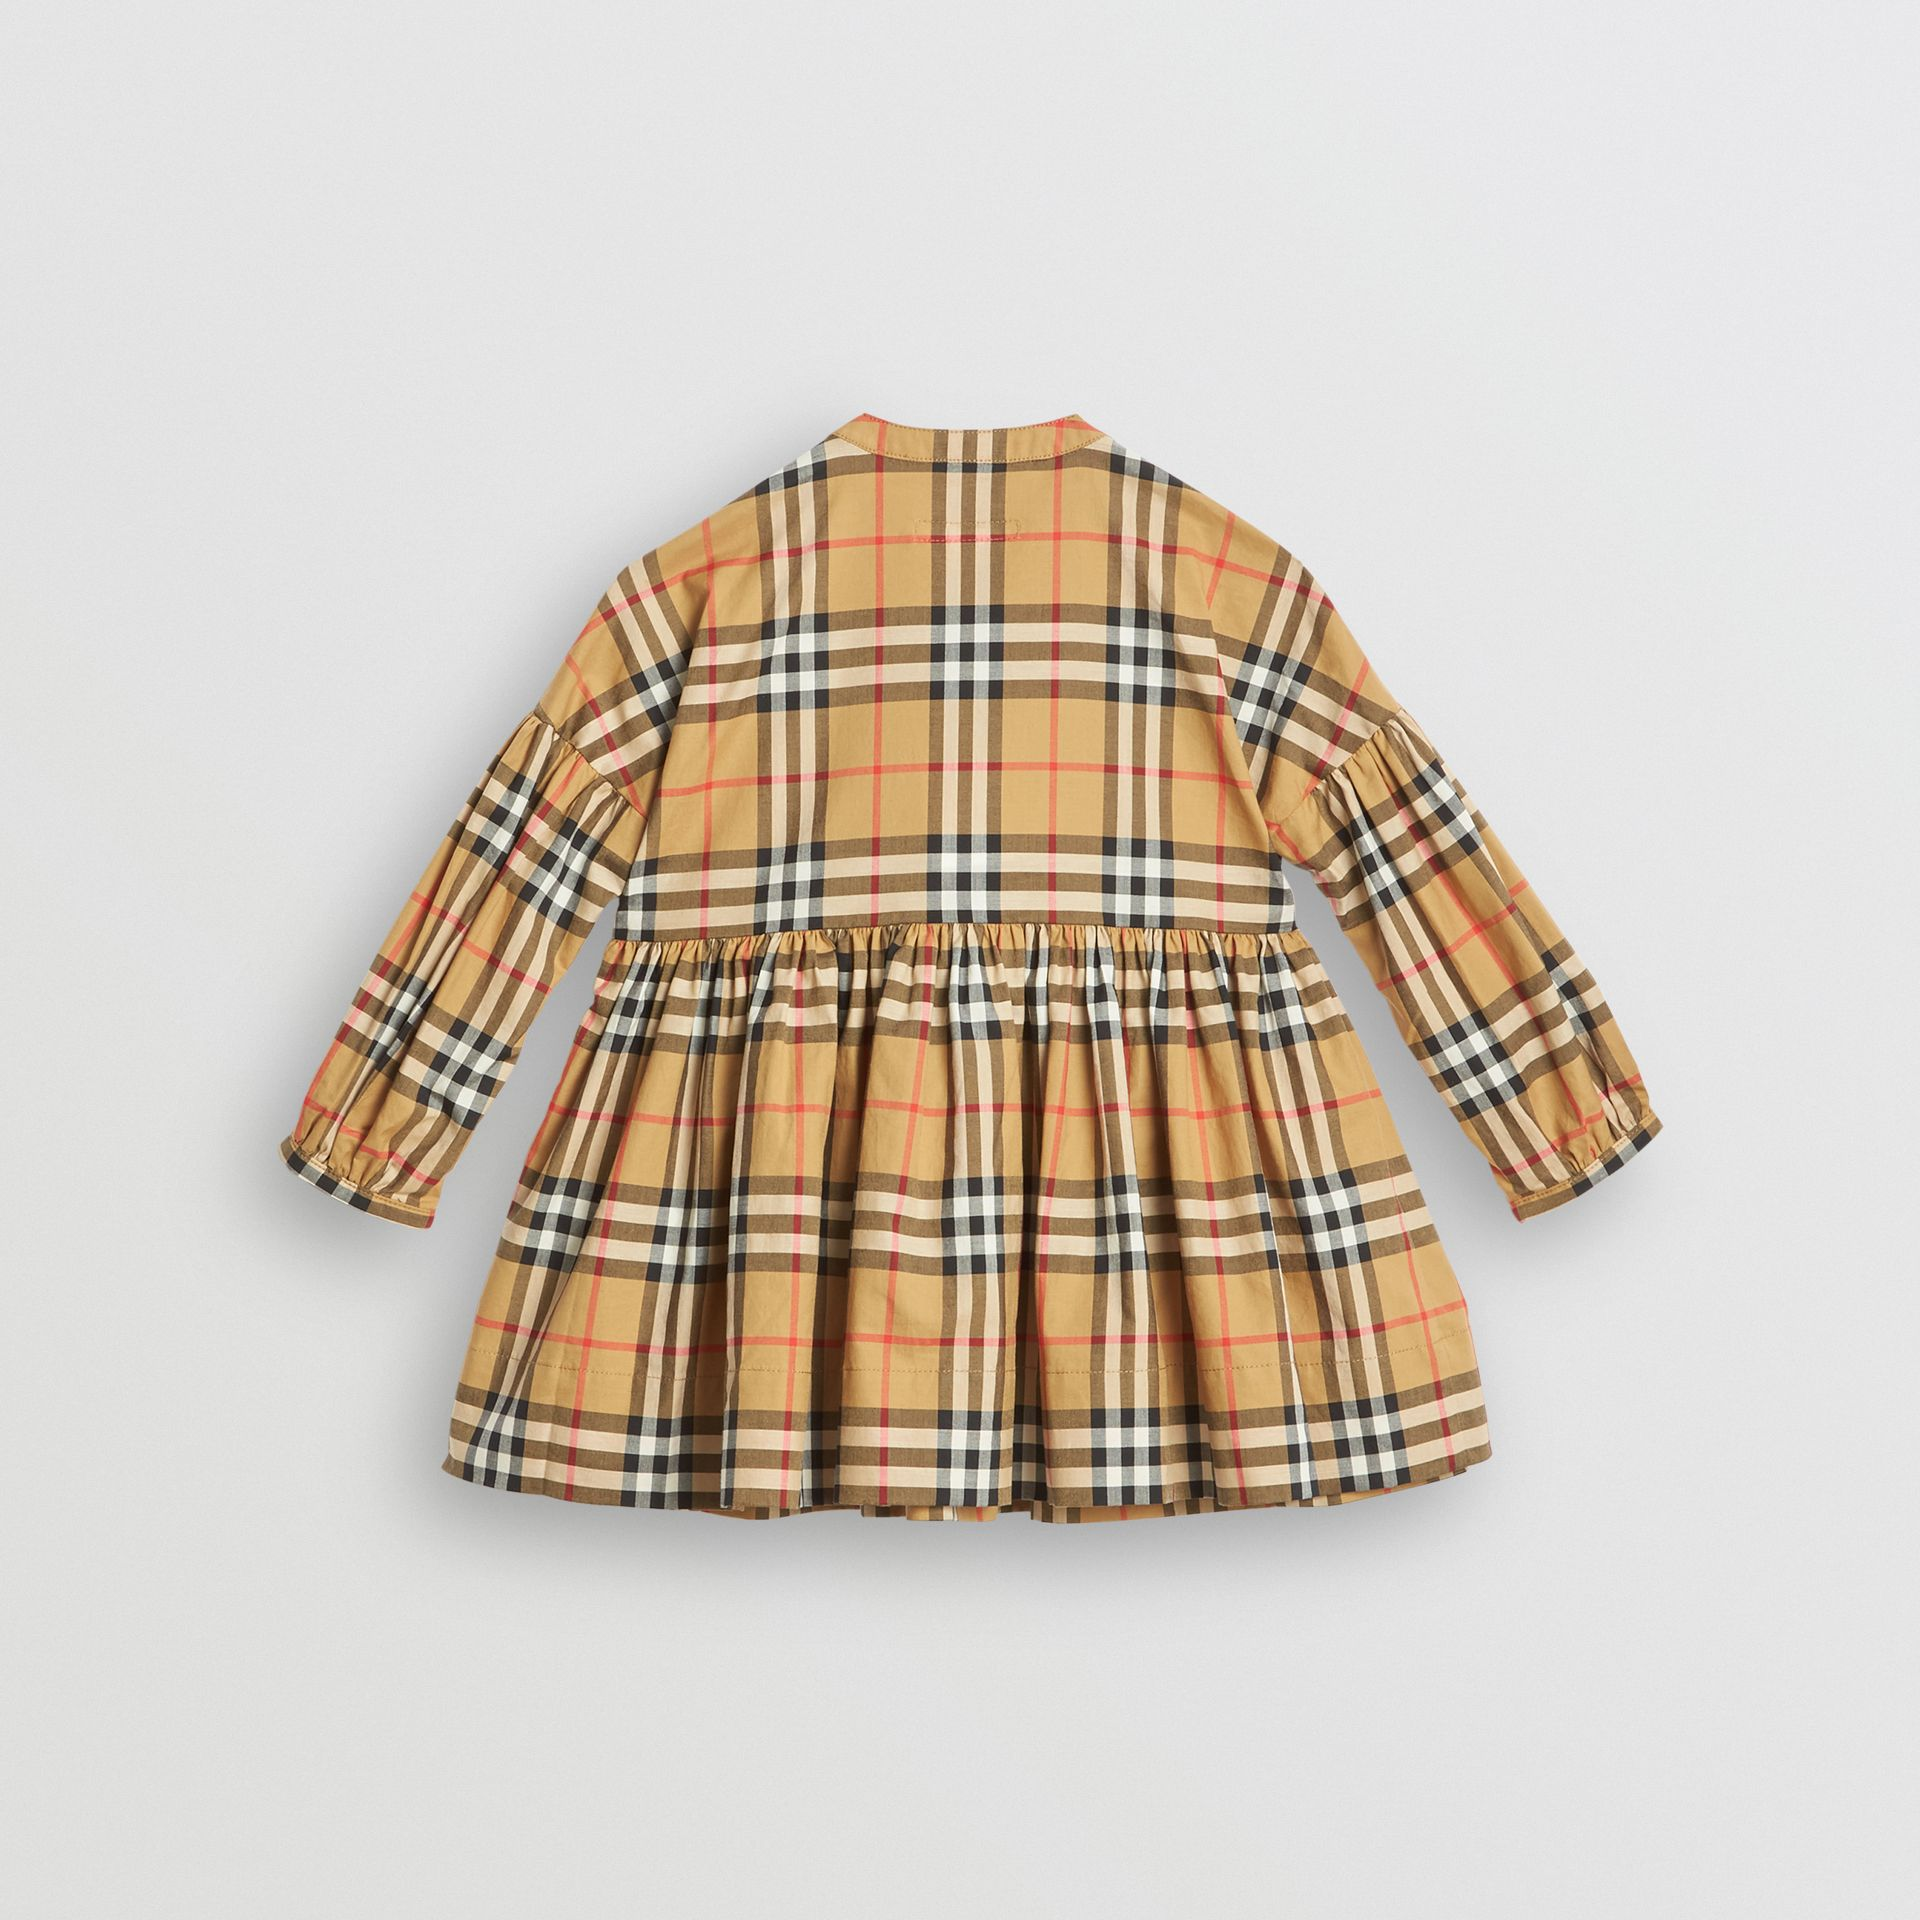 Gathered Sleeve Vintage Check Cotton Dress in Antique Yellow - Children | Burberry - gallery image 3